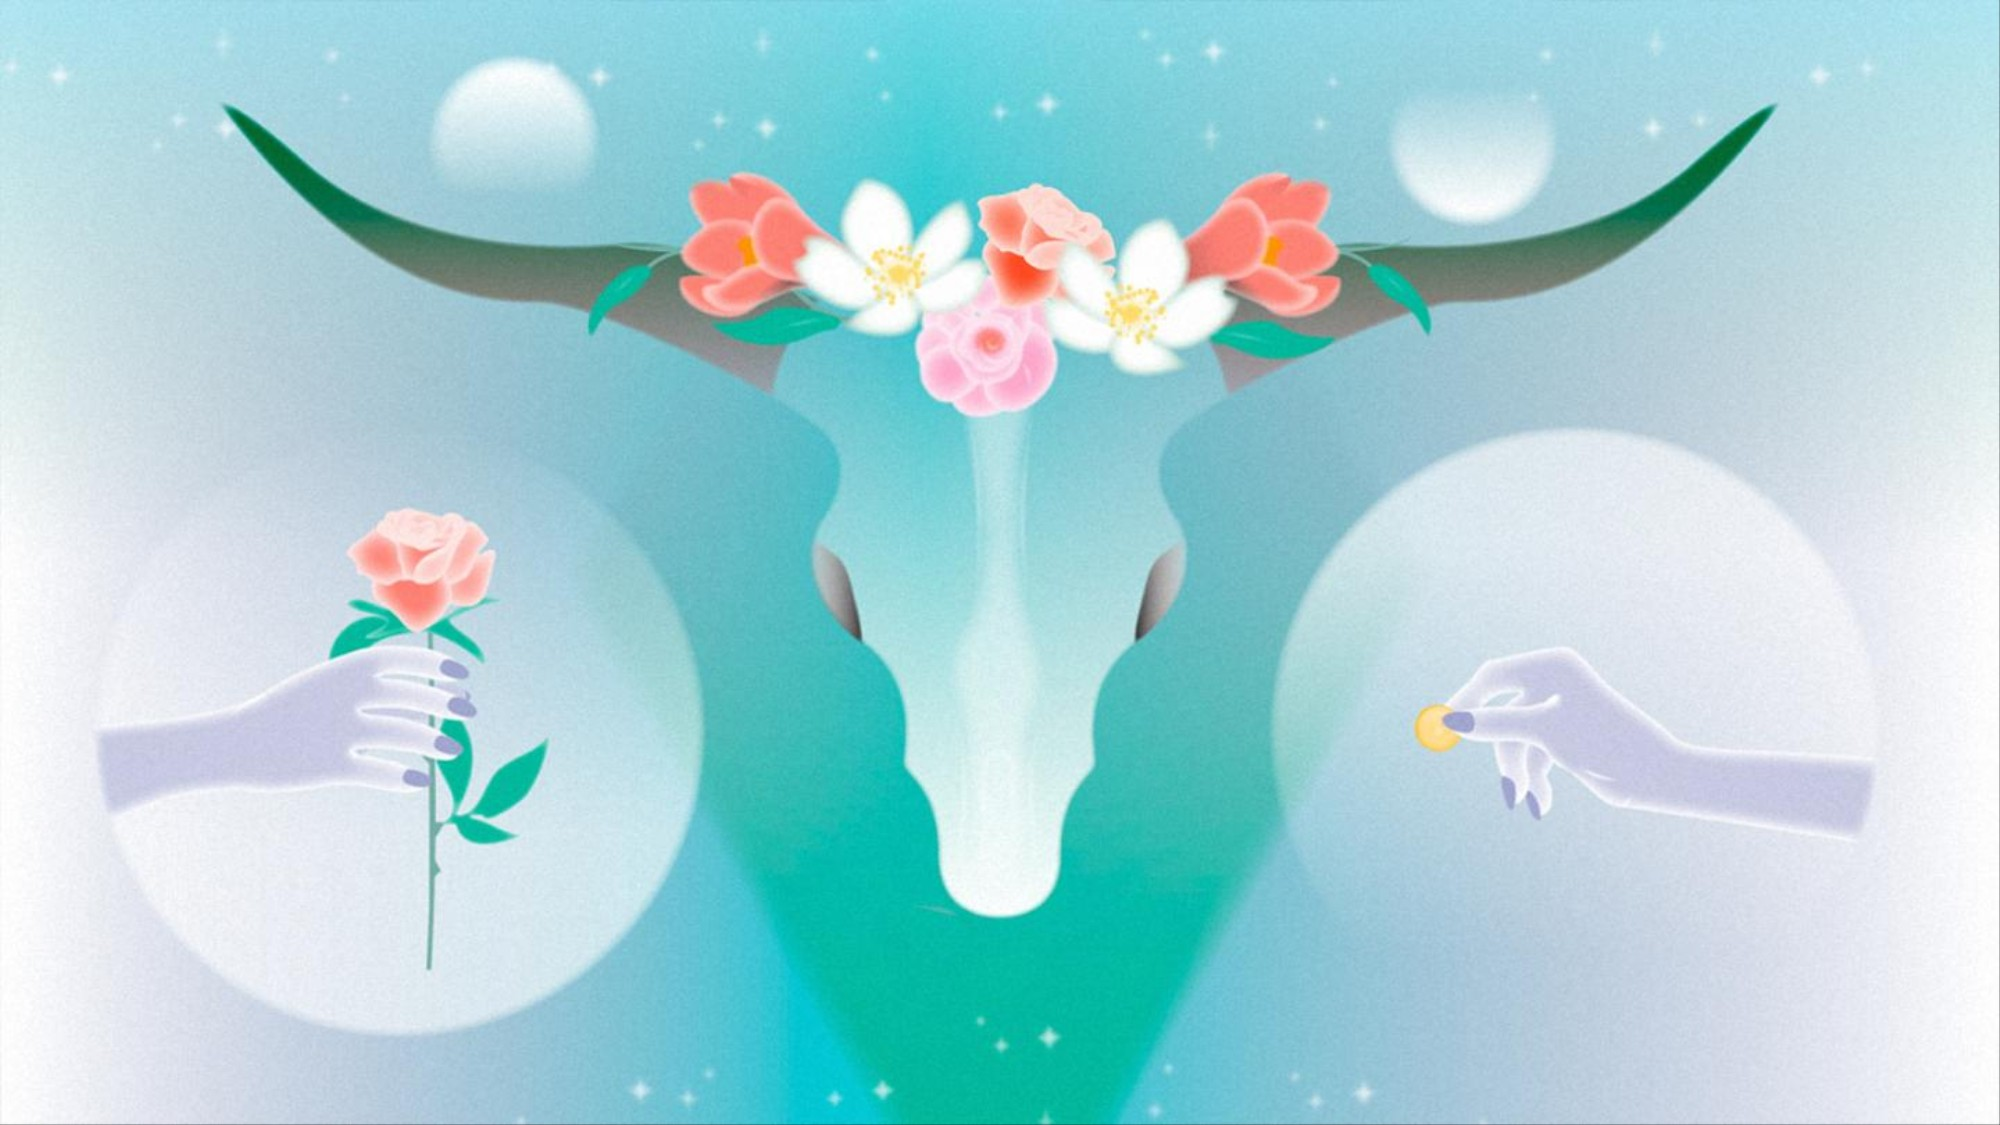 Monthly Horoscope: Taurus, July 2018 - VICE